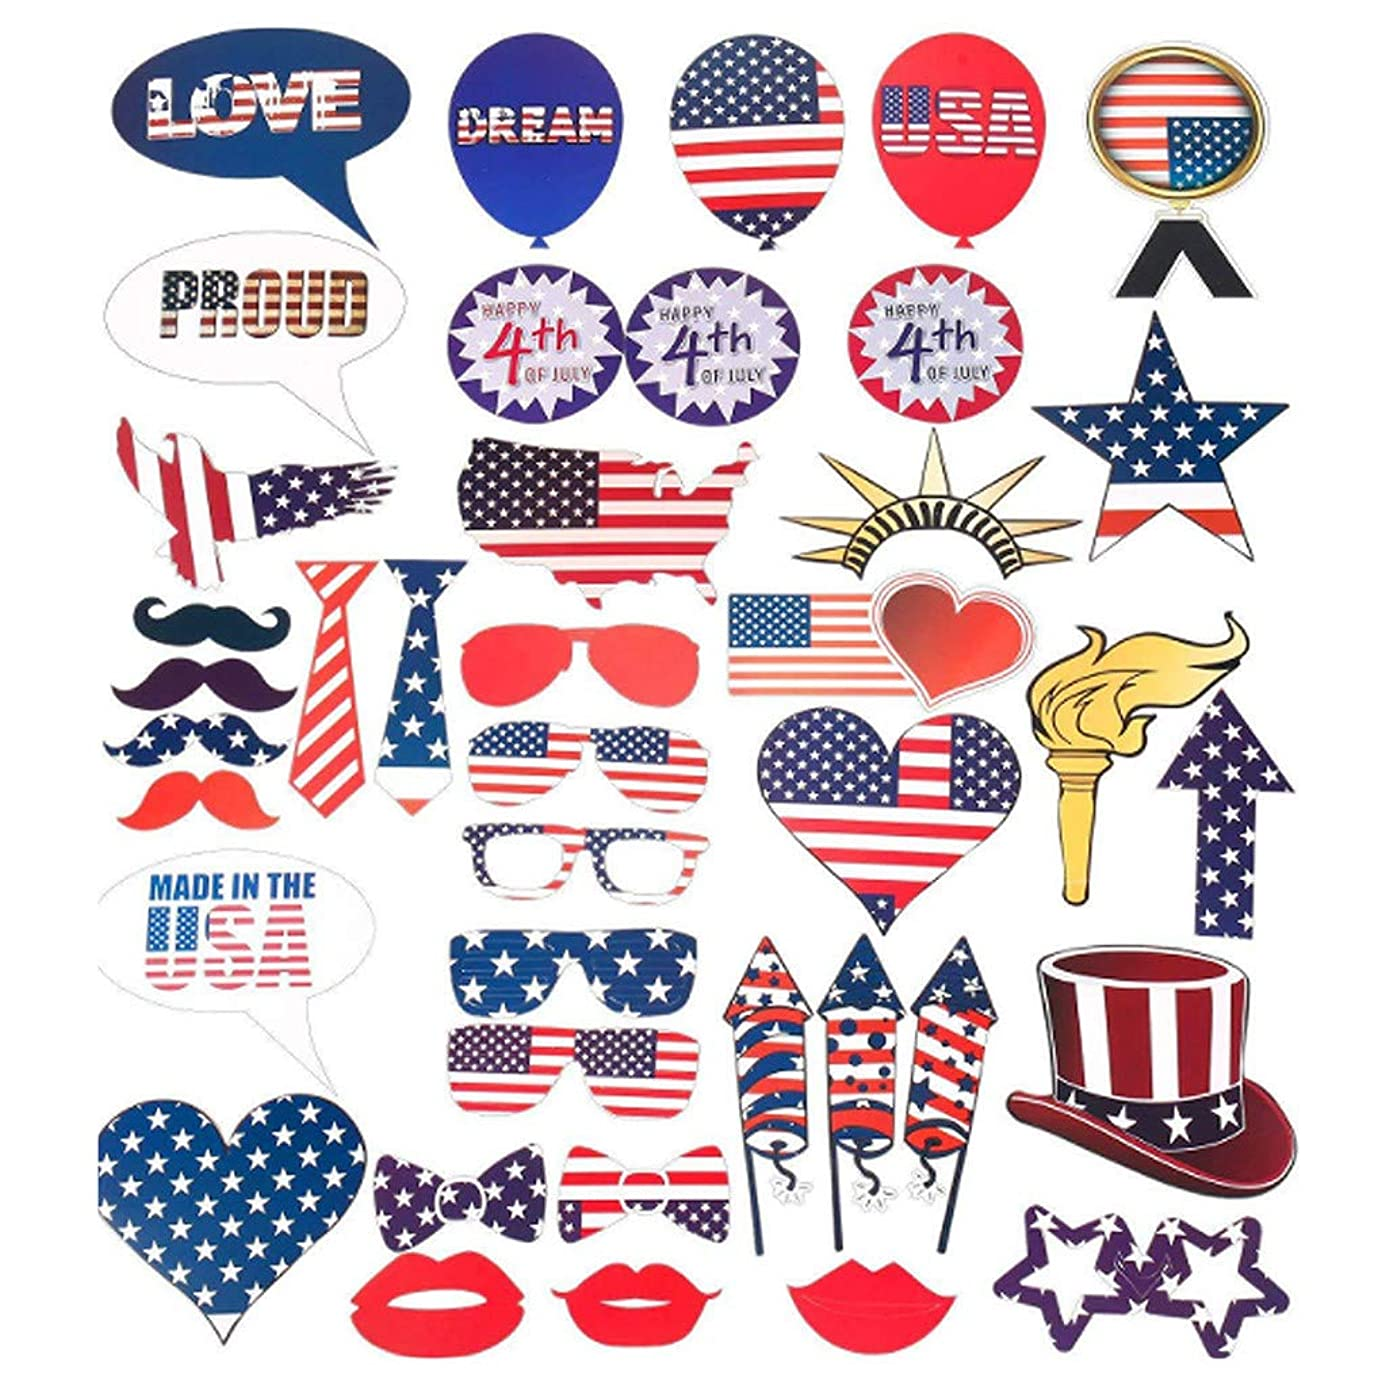 Binory 40pcs July 4th American Independence Day Photo Props for Home Party Decorations,Kids Adults Patriotic Party Supplies Gift